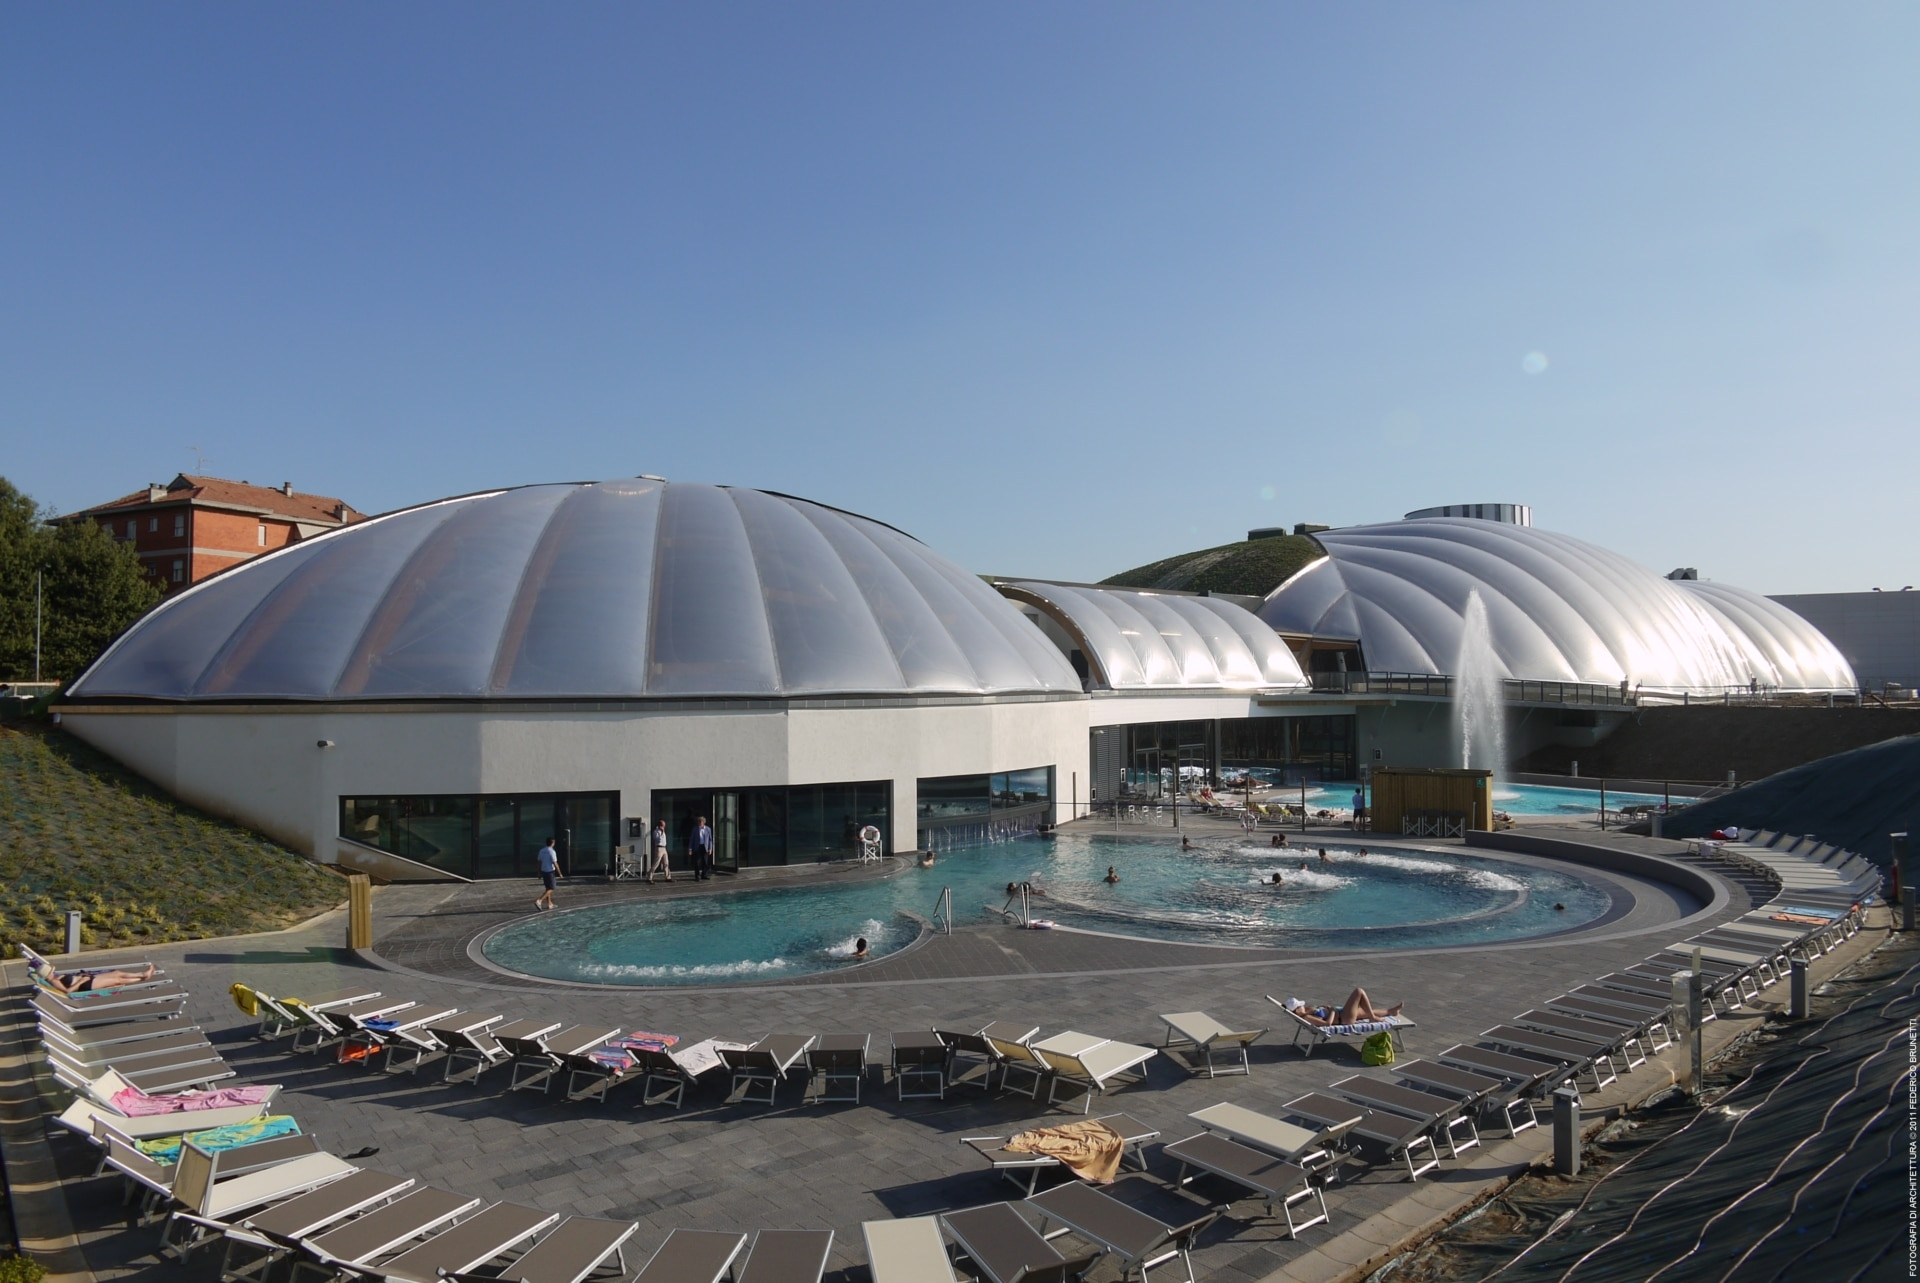 Our Texlon® ETFE system creates a year-round swimming and entertainment experience